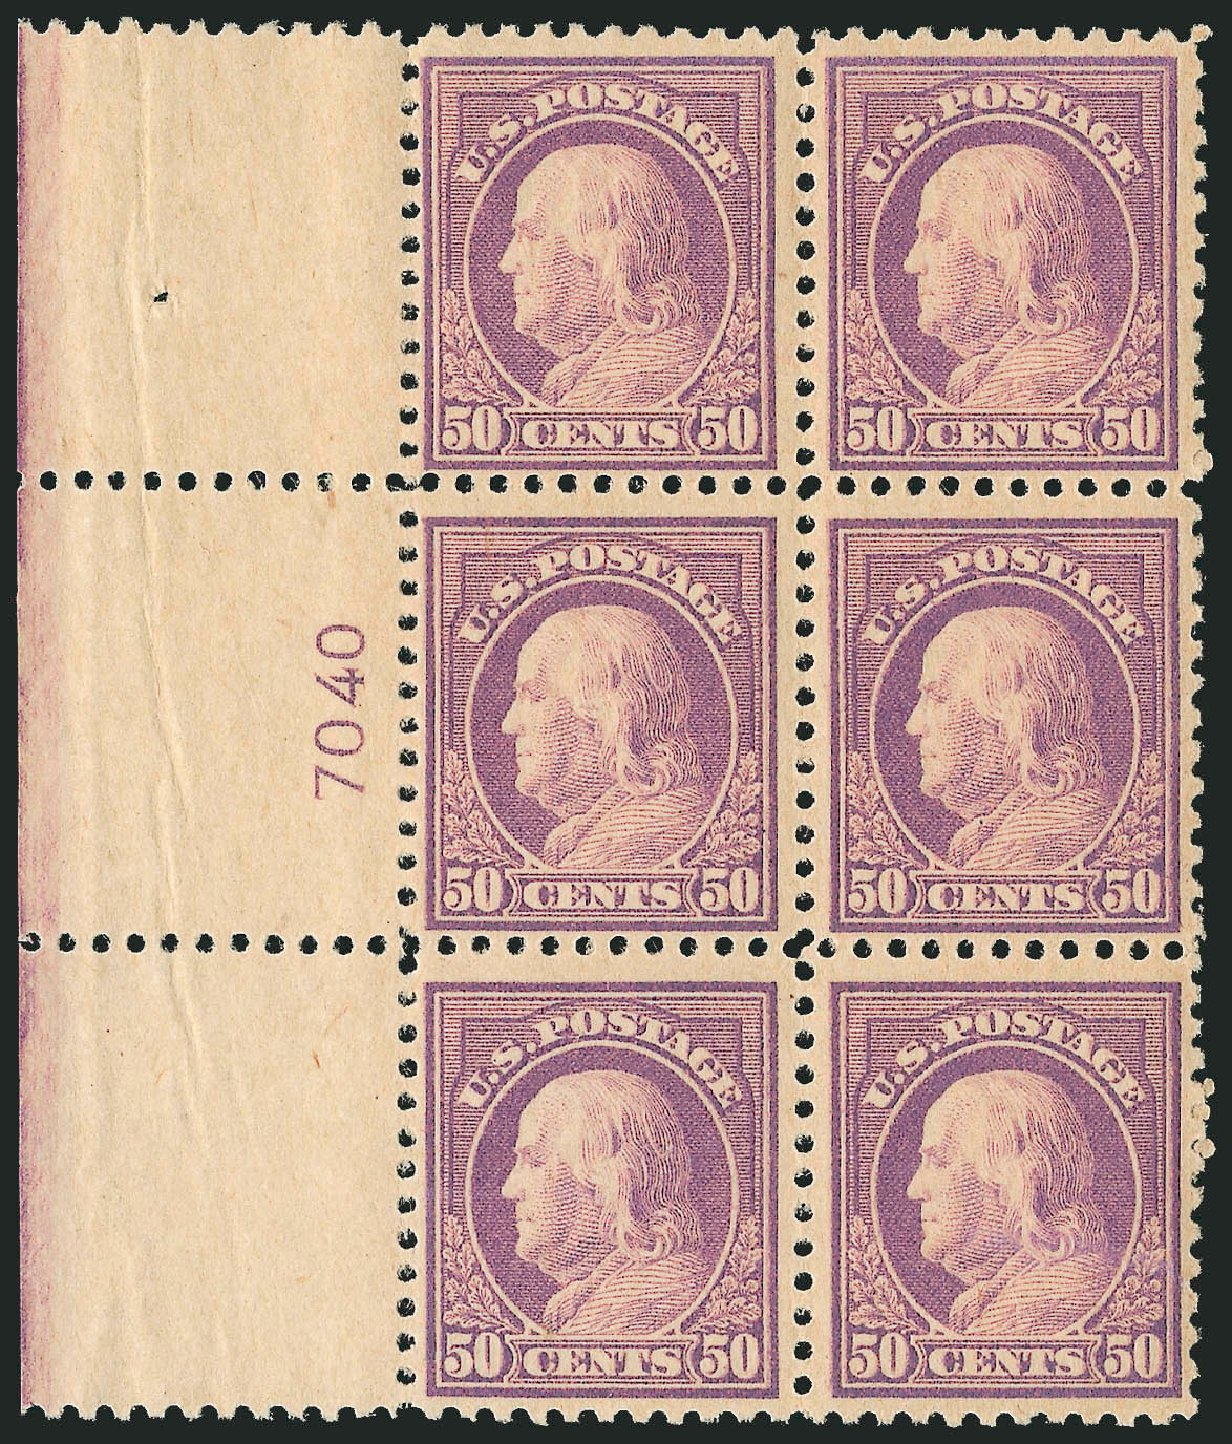 US Stamps Price Scott Catalog #517 - 50c 1917 Franklin Perf 11. Robert Siegel Auction Galleries, Sep 2014, Sale 1078, Lot 570